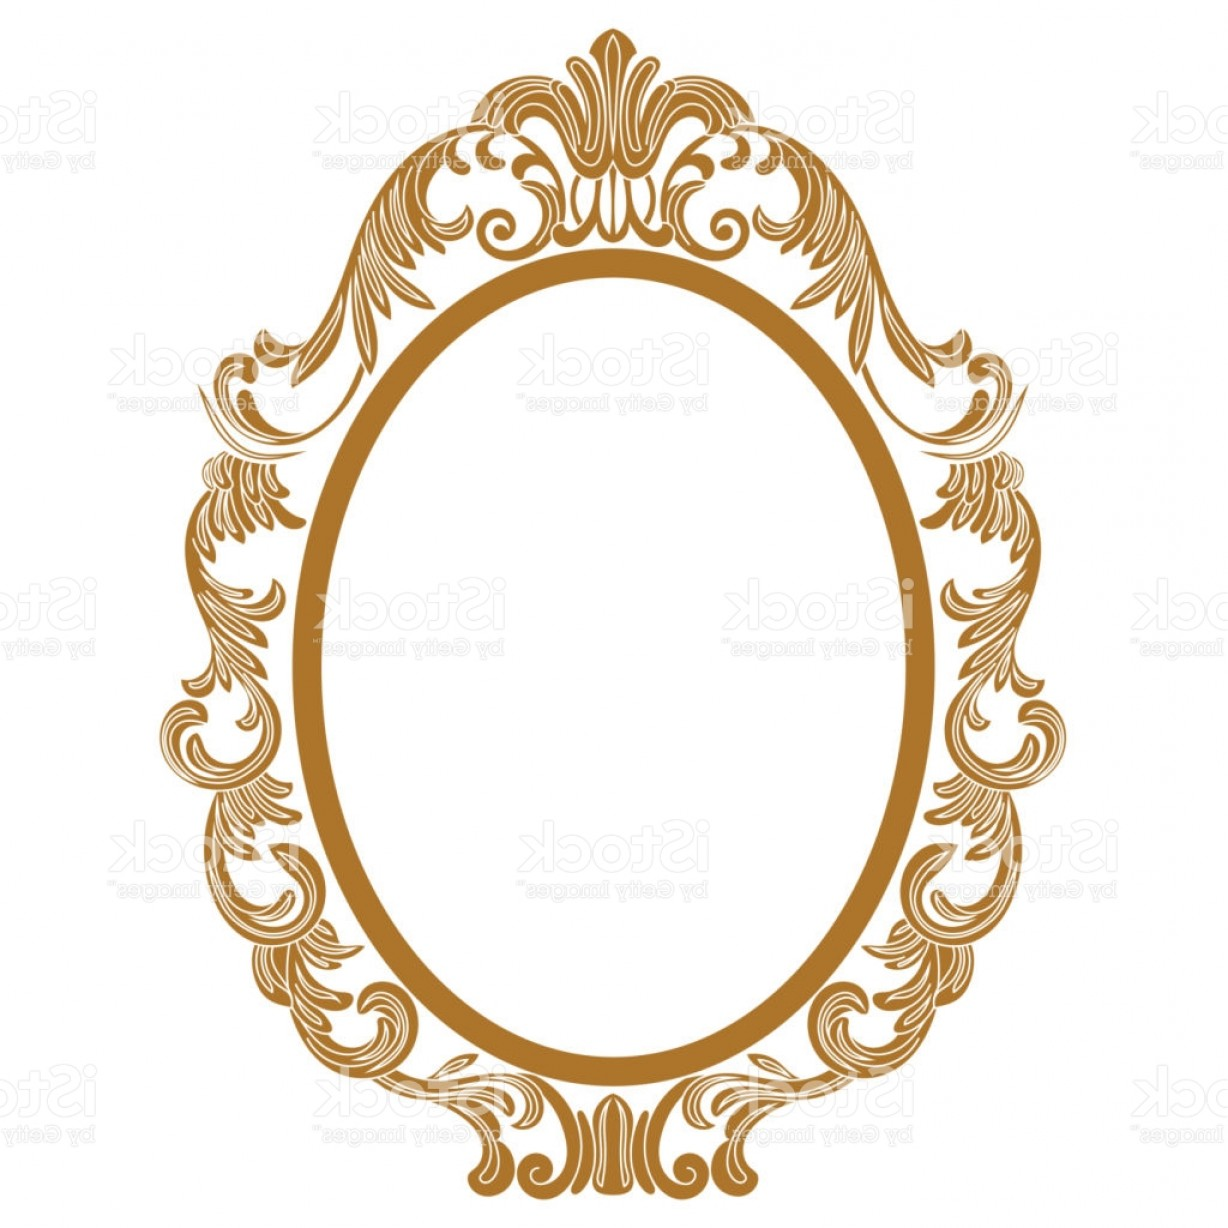 Filigree Oval Frame Vector: Golden Vintage Oval Graphical Frame In Antique Style Vector Gm